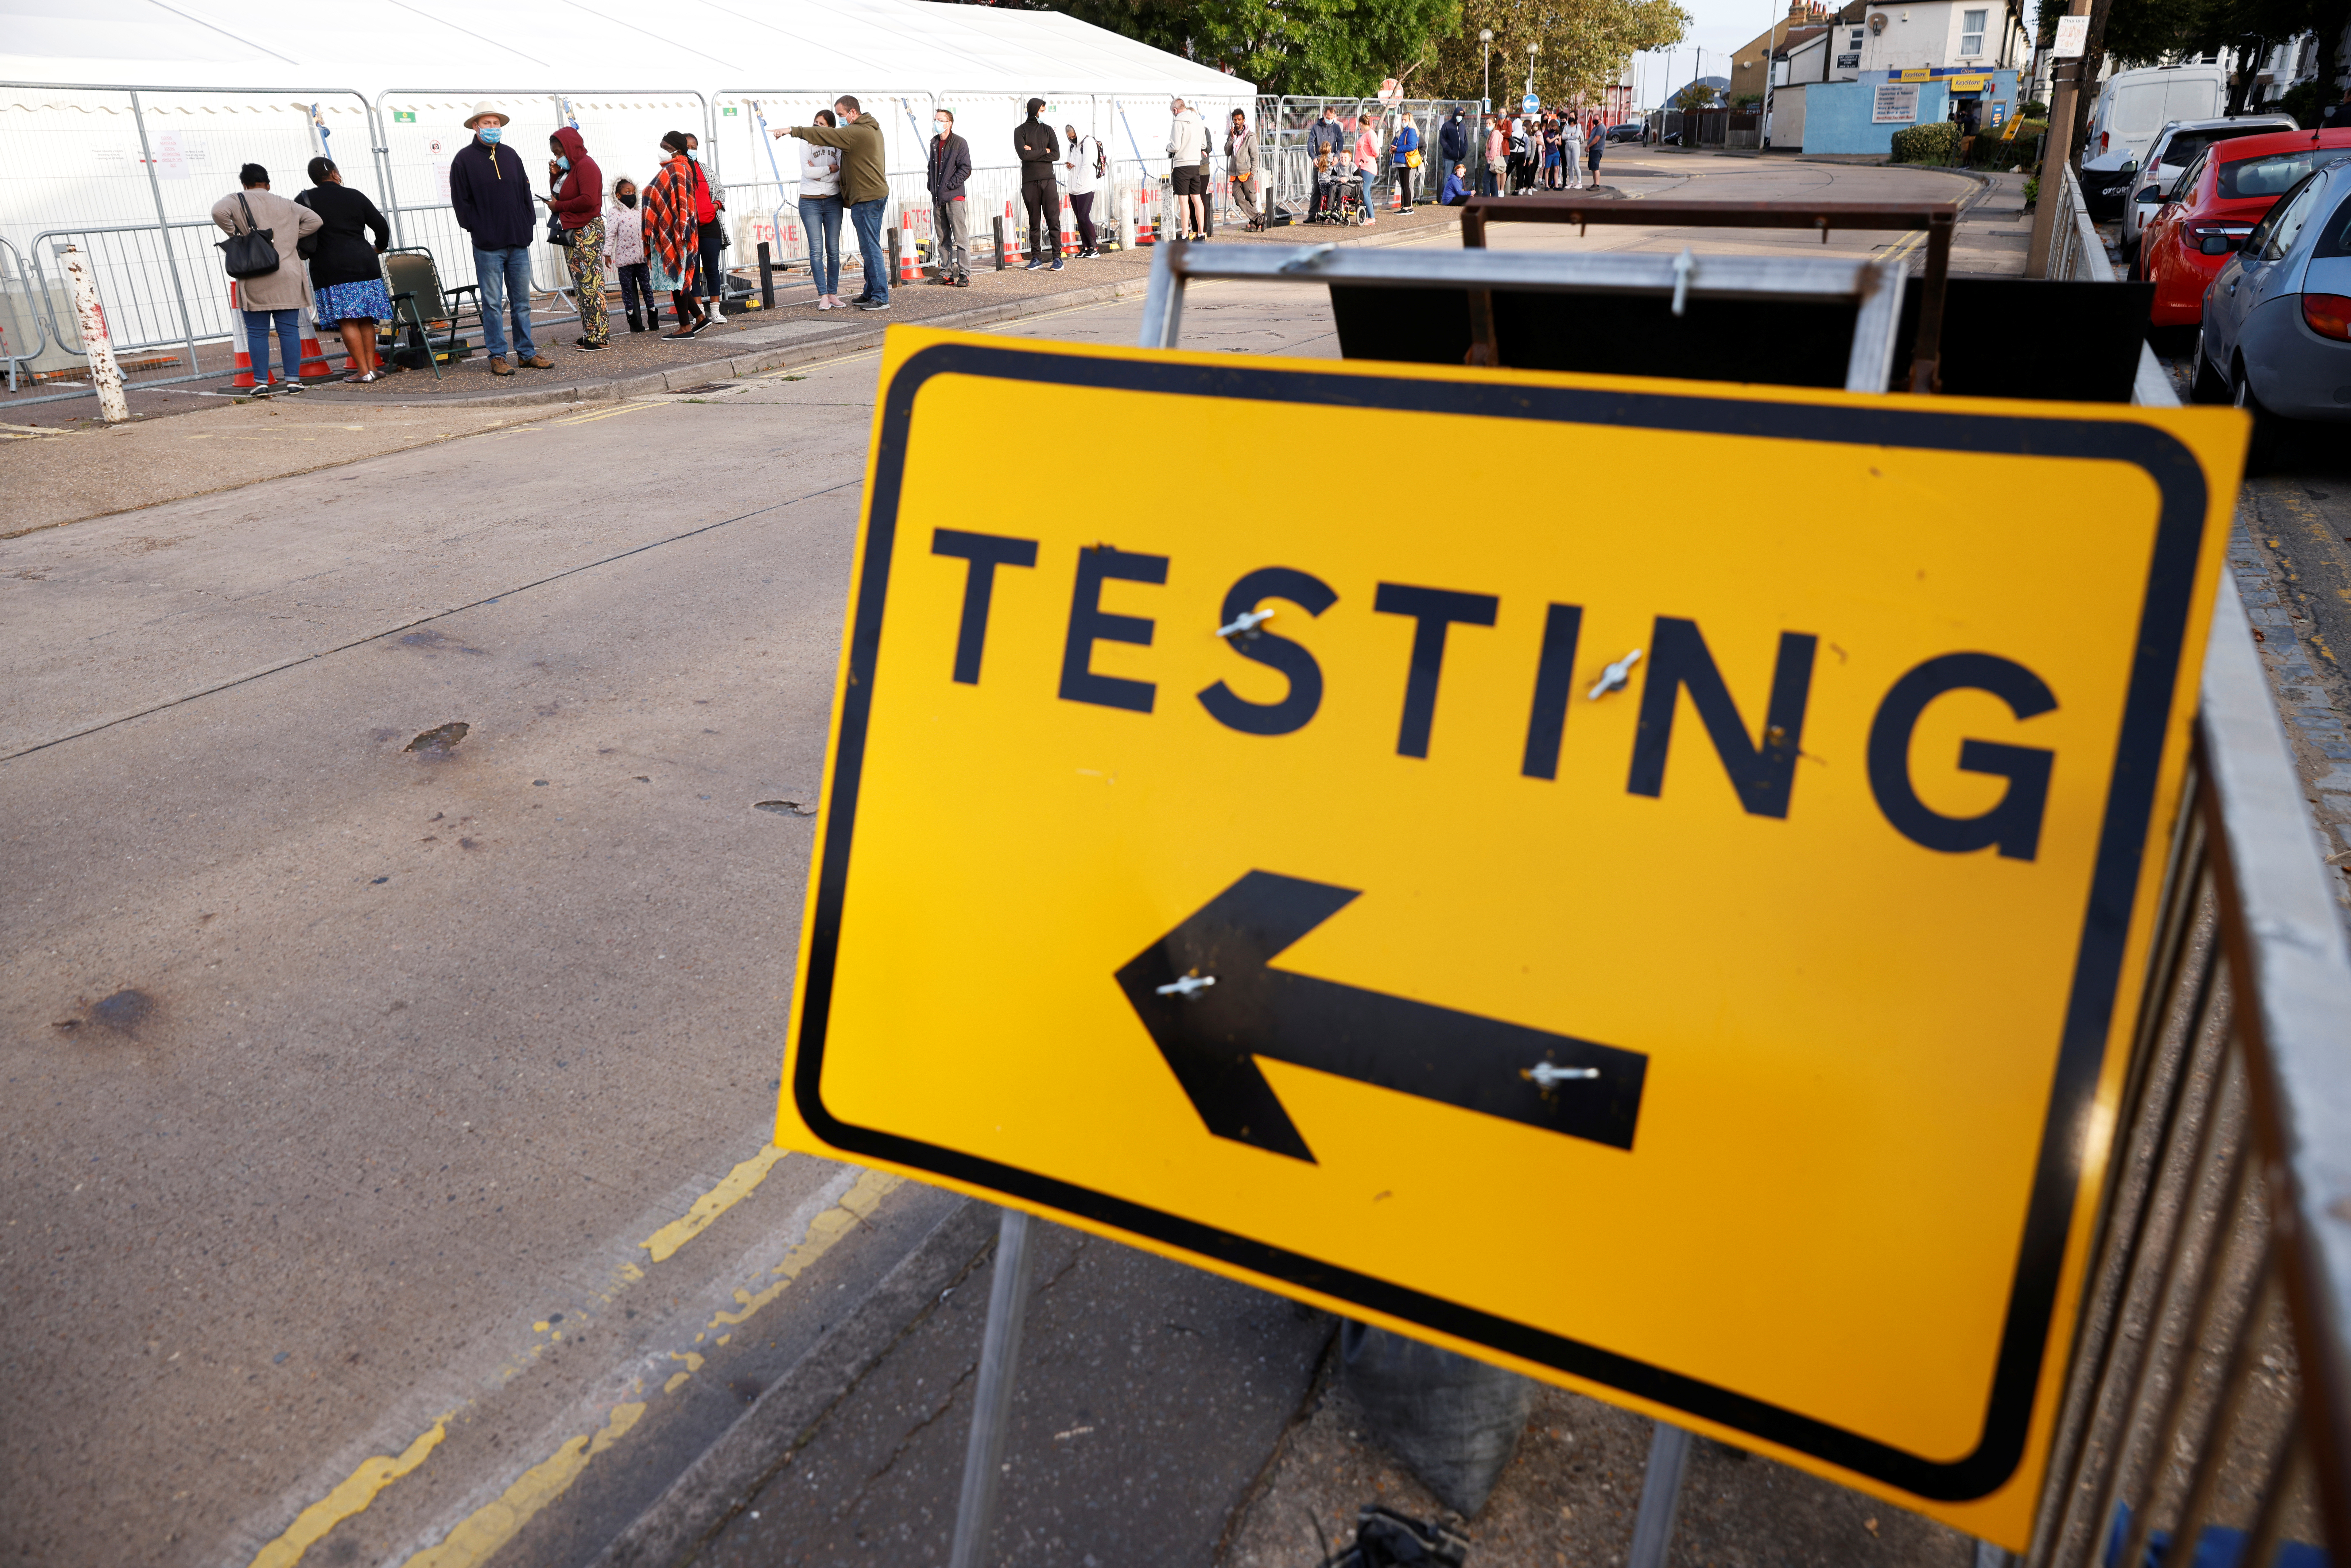 A sign is pictured as people queue outside a test centre, following an outbreak of the coronavirus disease (COVID-19), in Southend-on-sea, Britain September 17, 2020. REUTERS/John Sibley